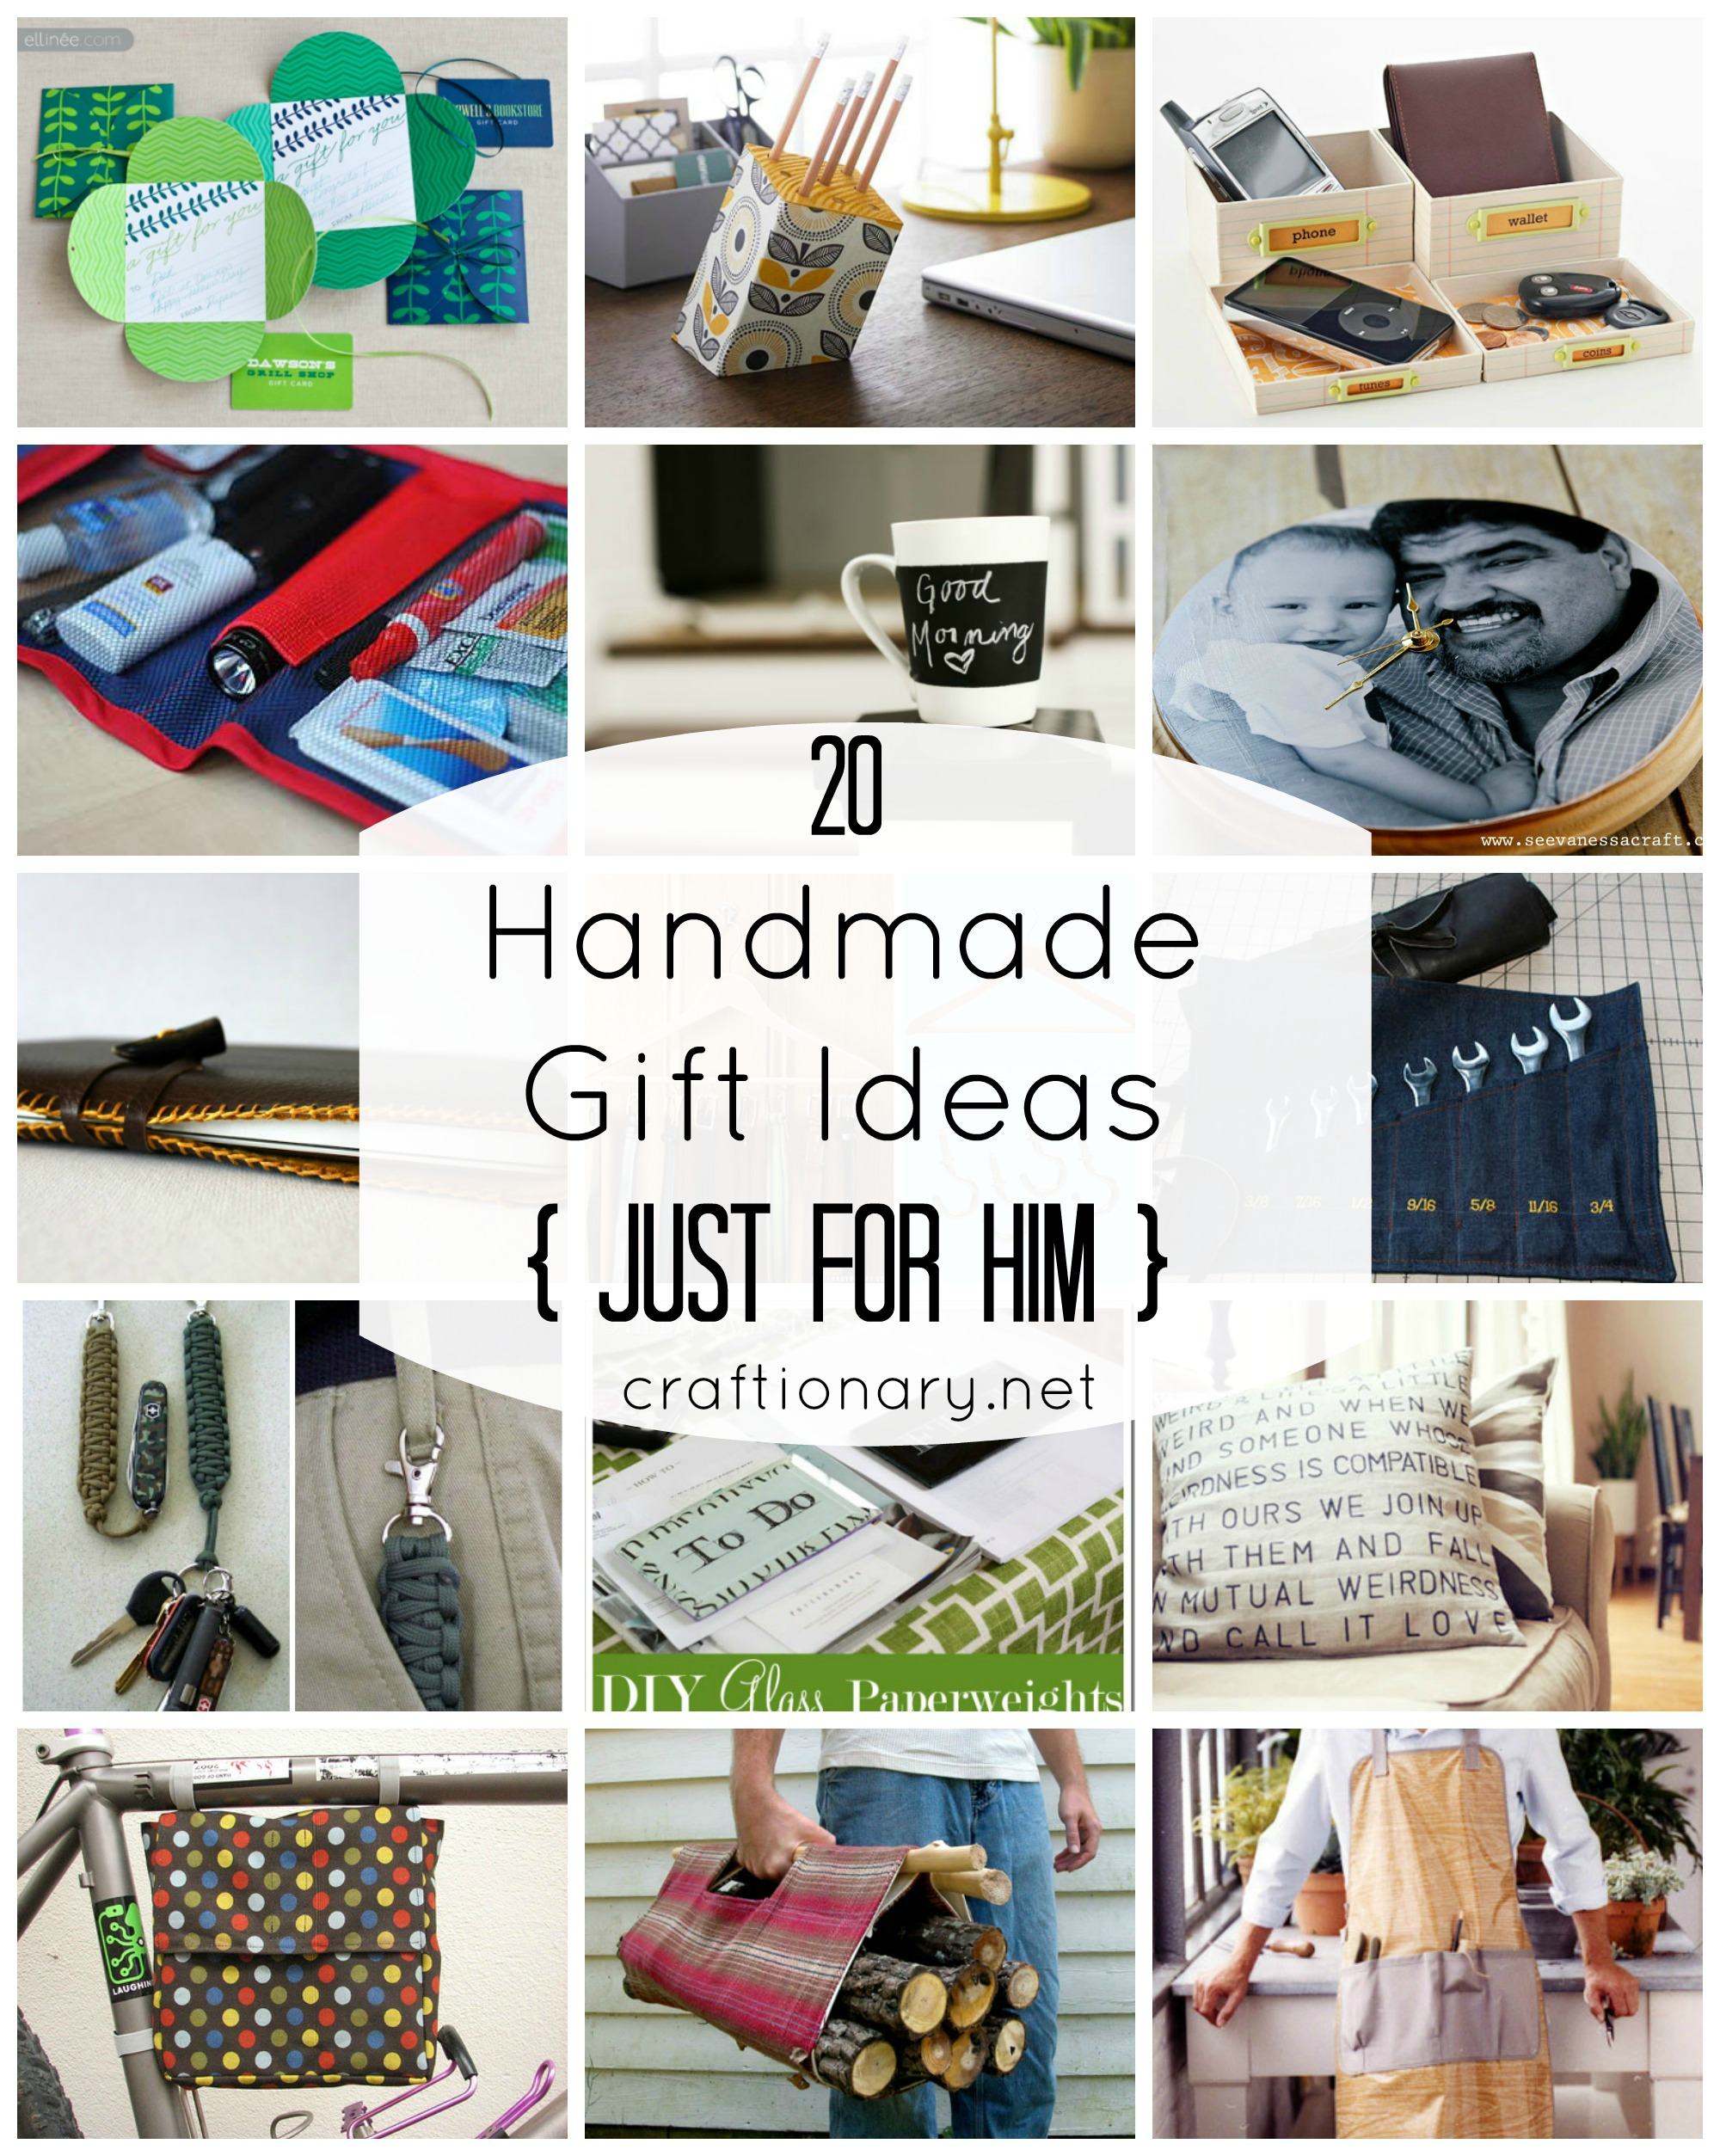 gift ideas for old family photos - Craftionary